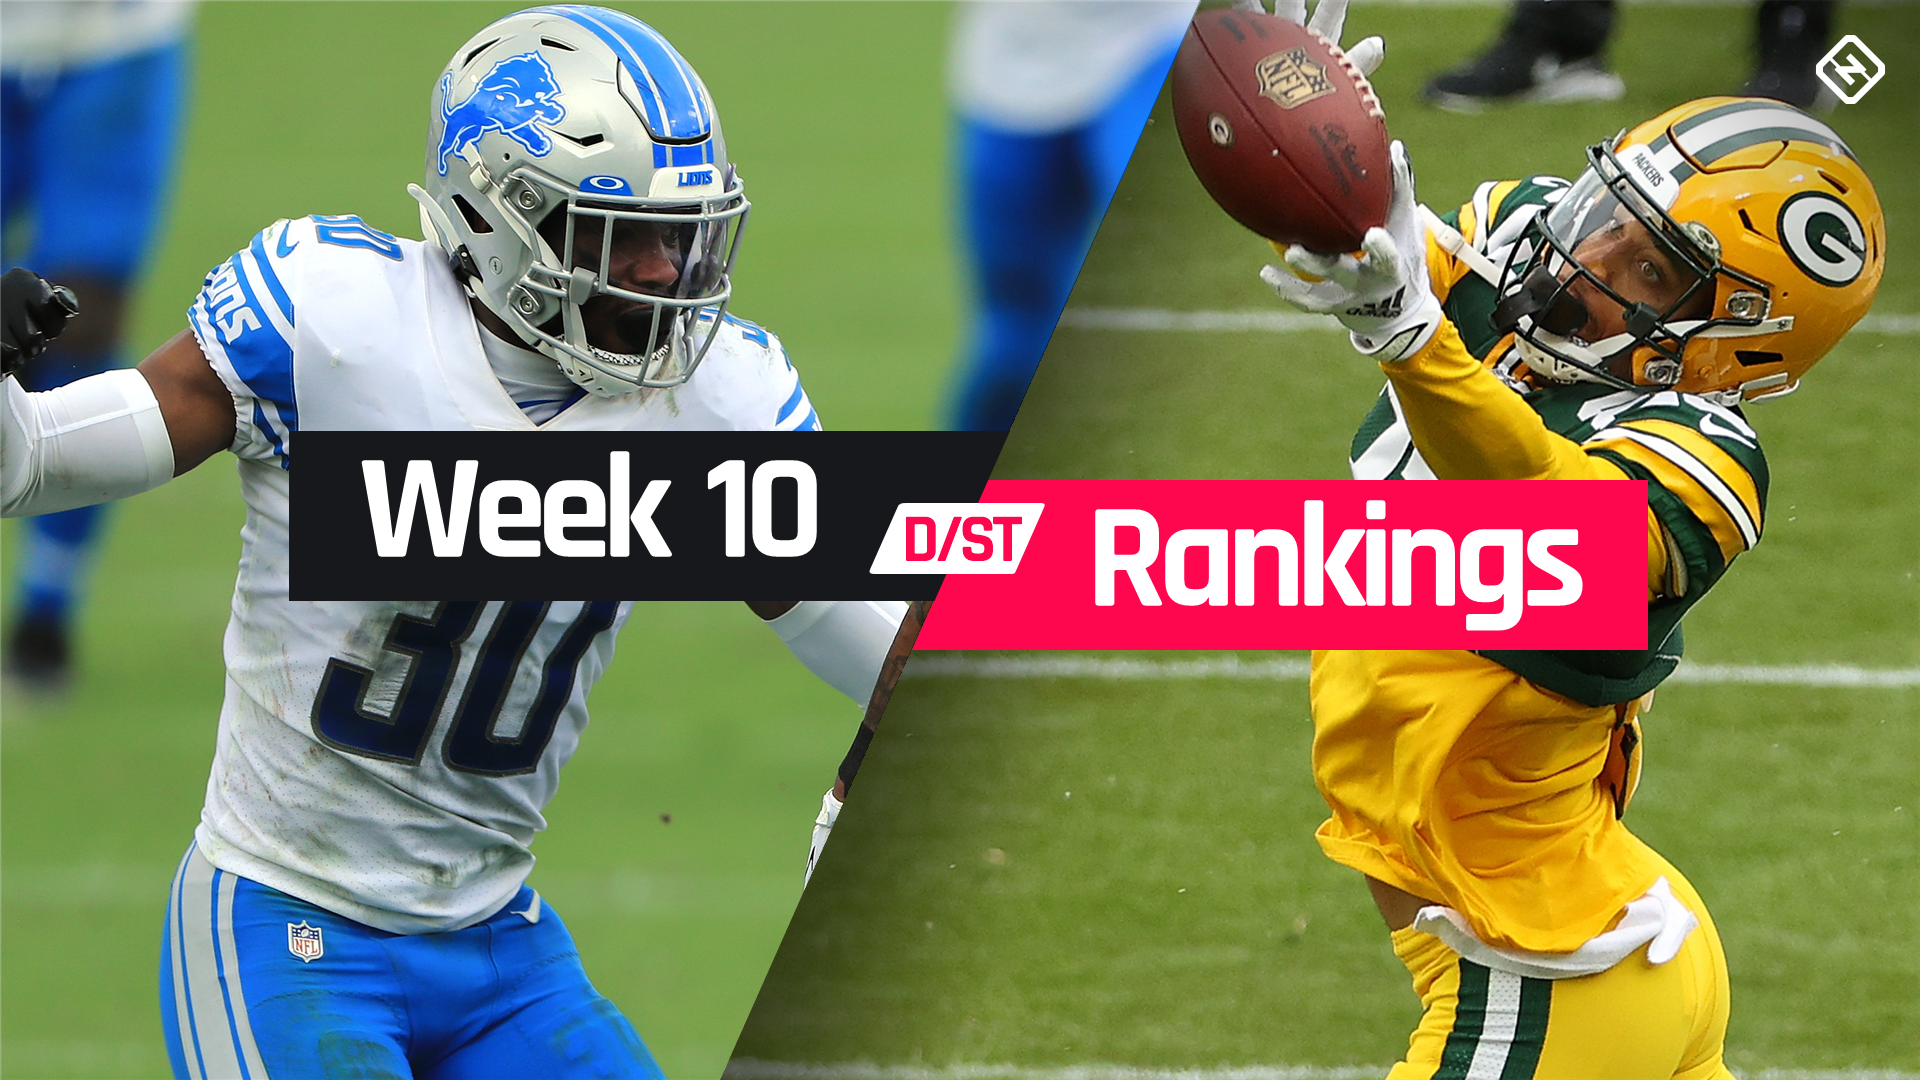 Week 10 Fantasy Defense Rankings Sleepers Busts Waiver Wire D St Streamers To Target Sporting News